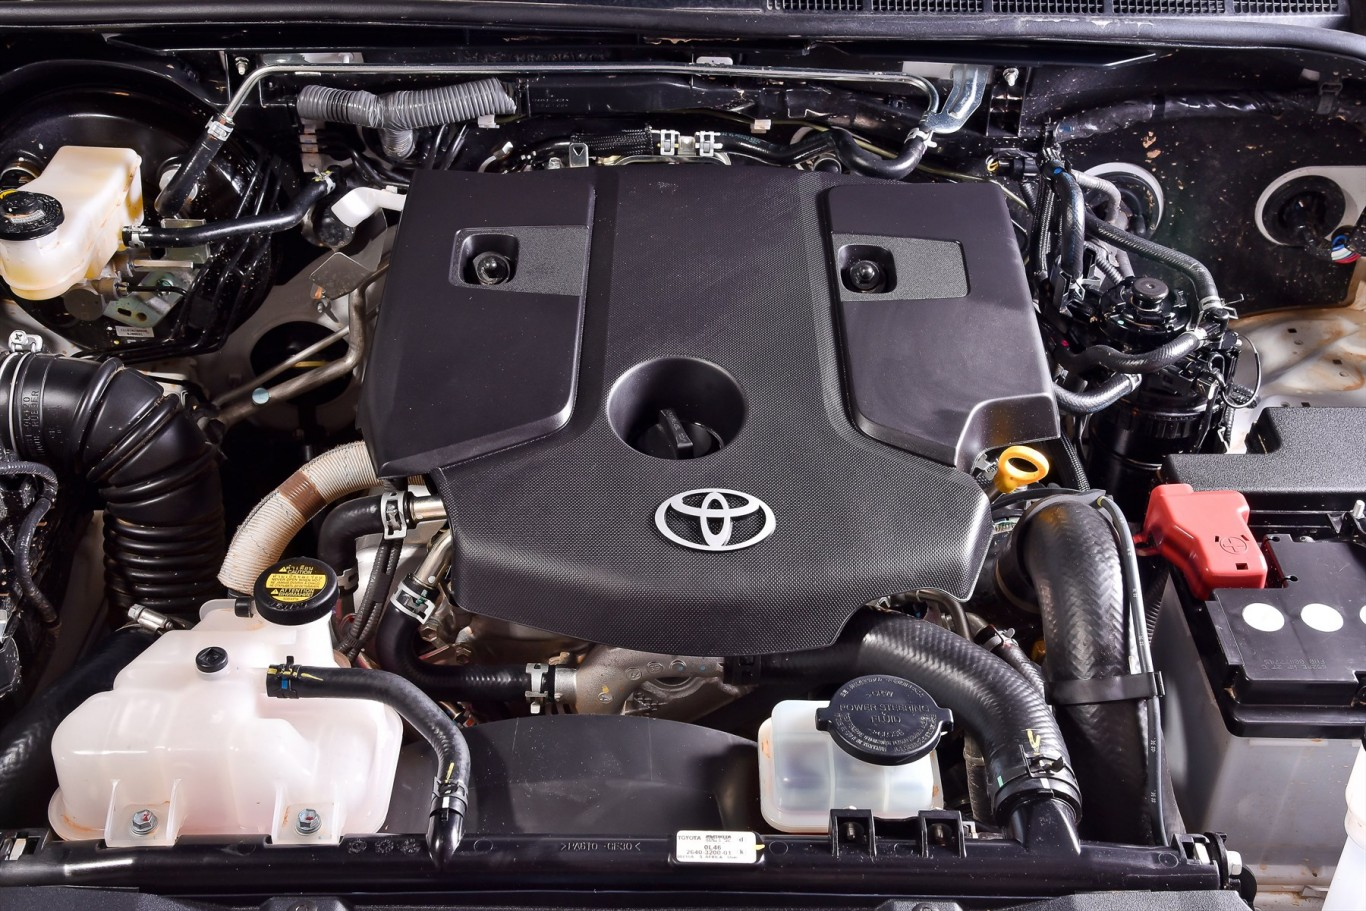 Praise for Toyota on parts supply and pricing in the Kinsey Report